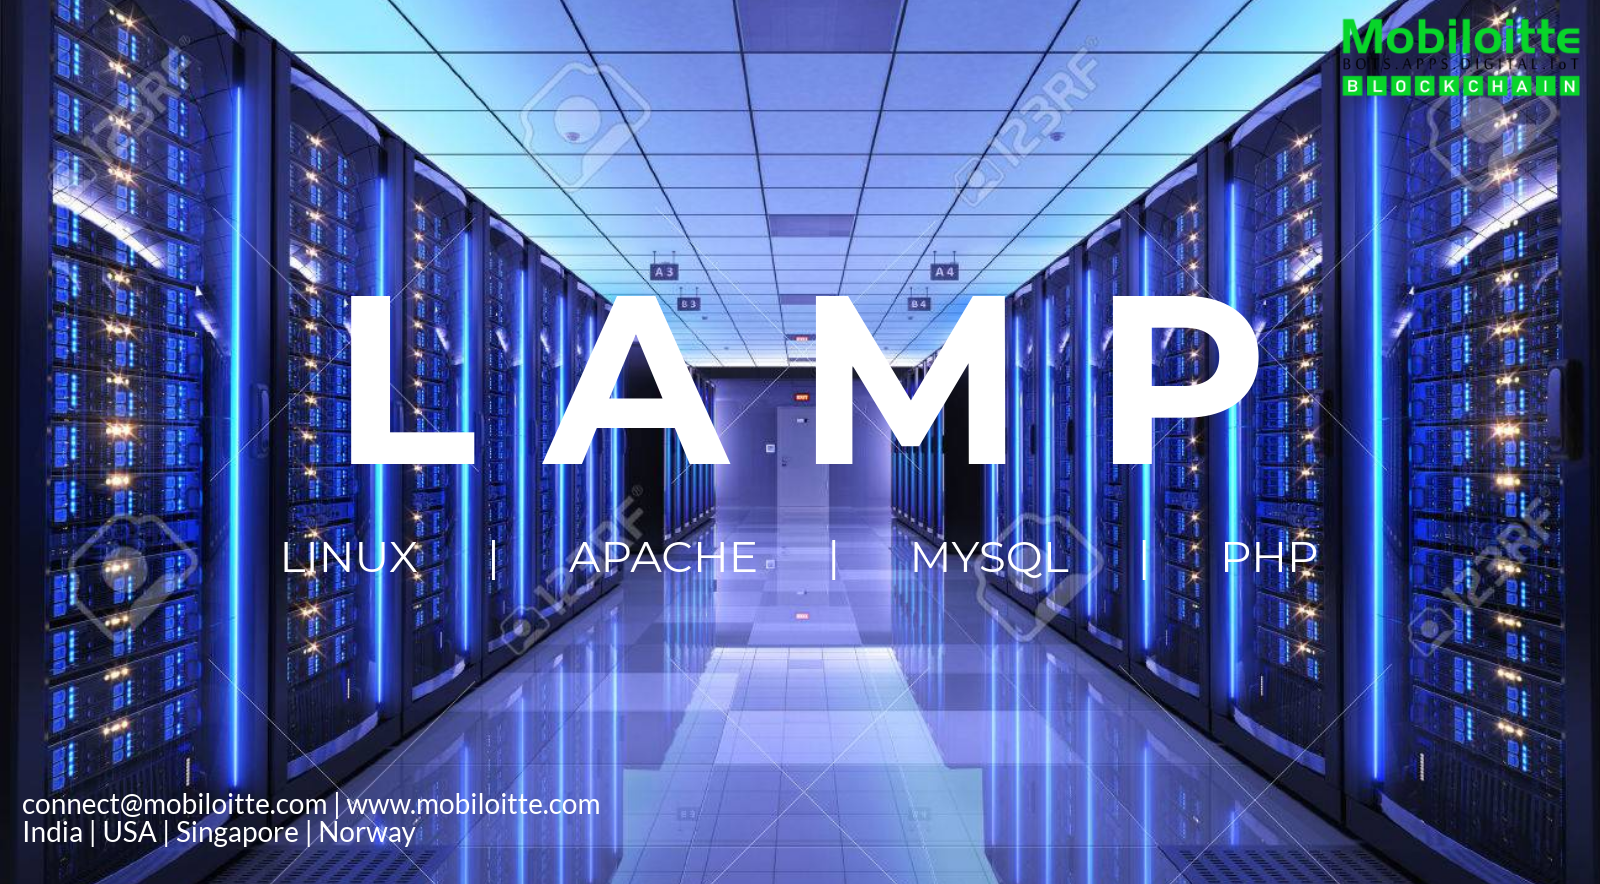 At Mobiloitte Reap The Benefits Of Linux Robust Architecture And Fast Development With Our Lamp Development Sol Development Javascript Application Development